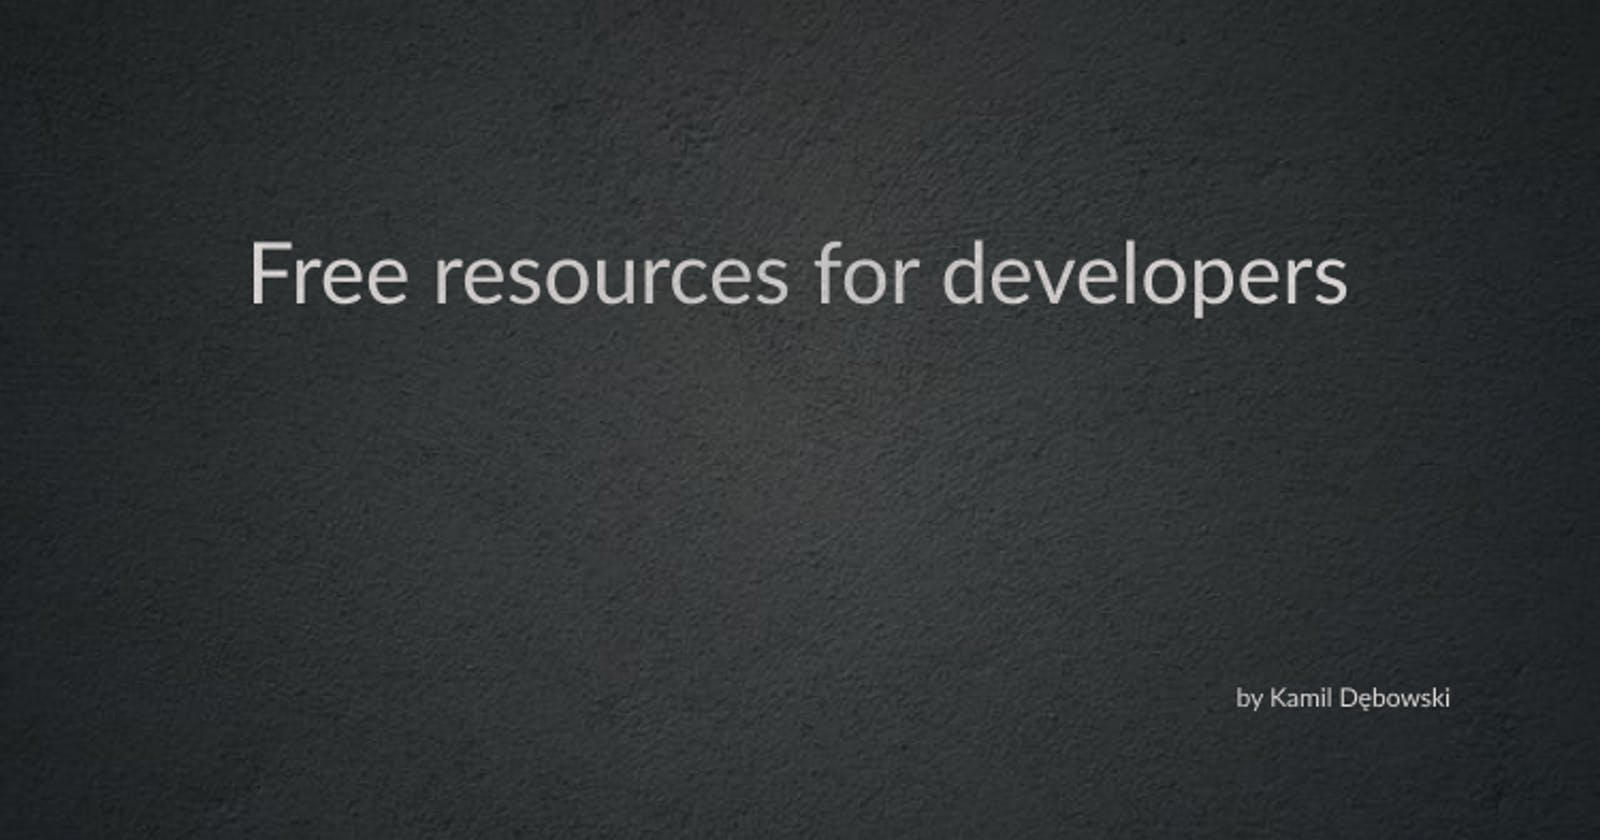 Where to find free resources for developers?